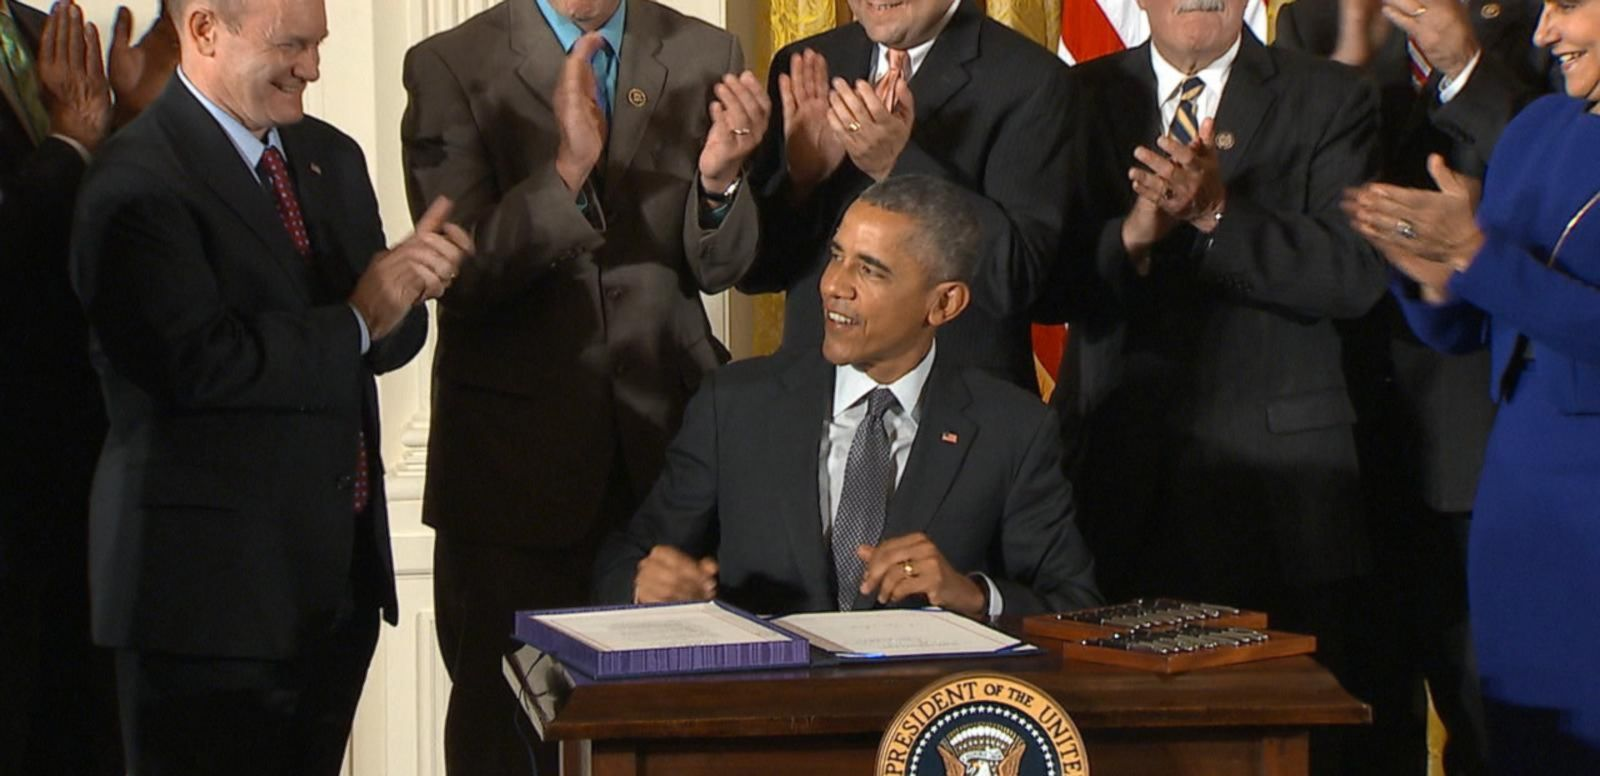 VIDEO: Obama Signs Fast-Track Trade Bill